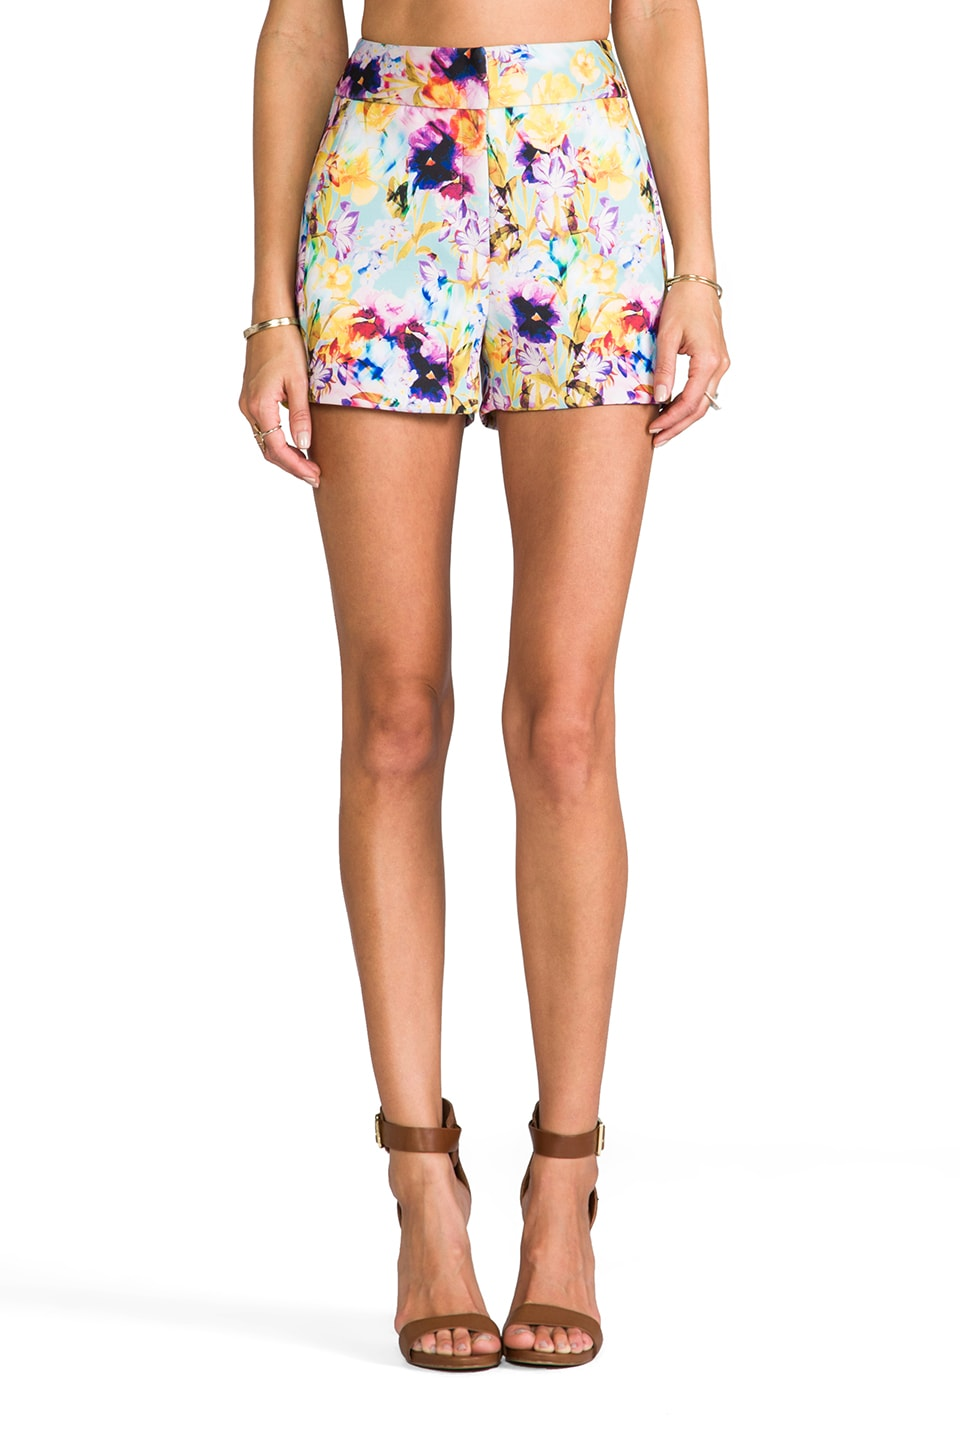 Sachin & Babi Valerie Shorts in Multi